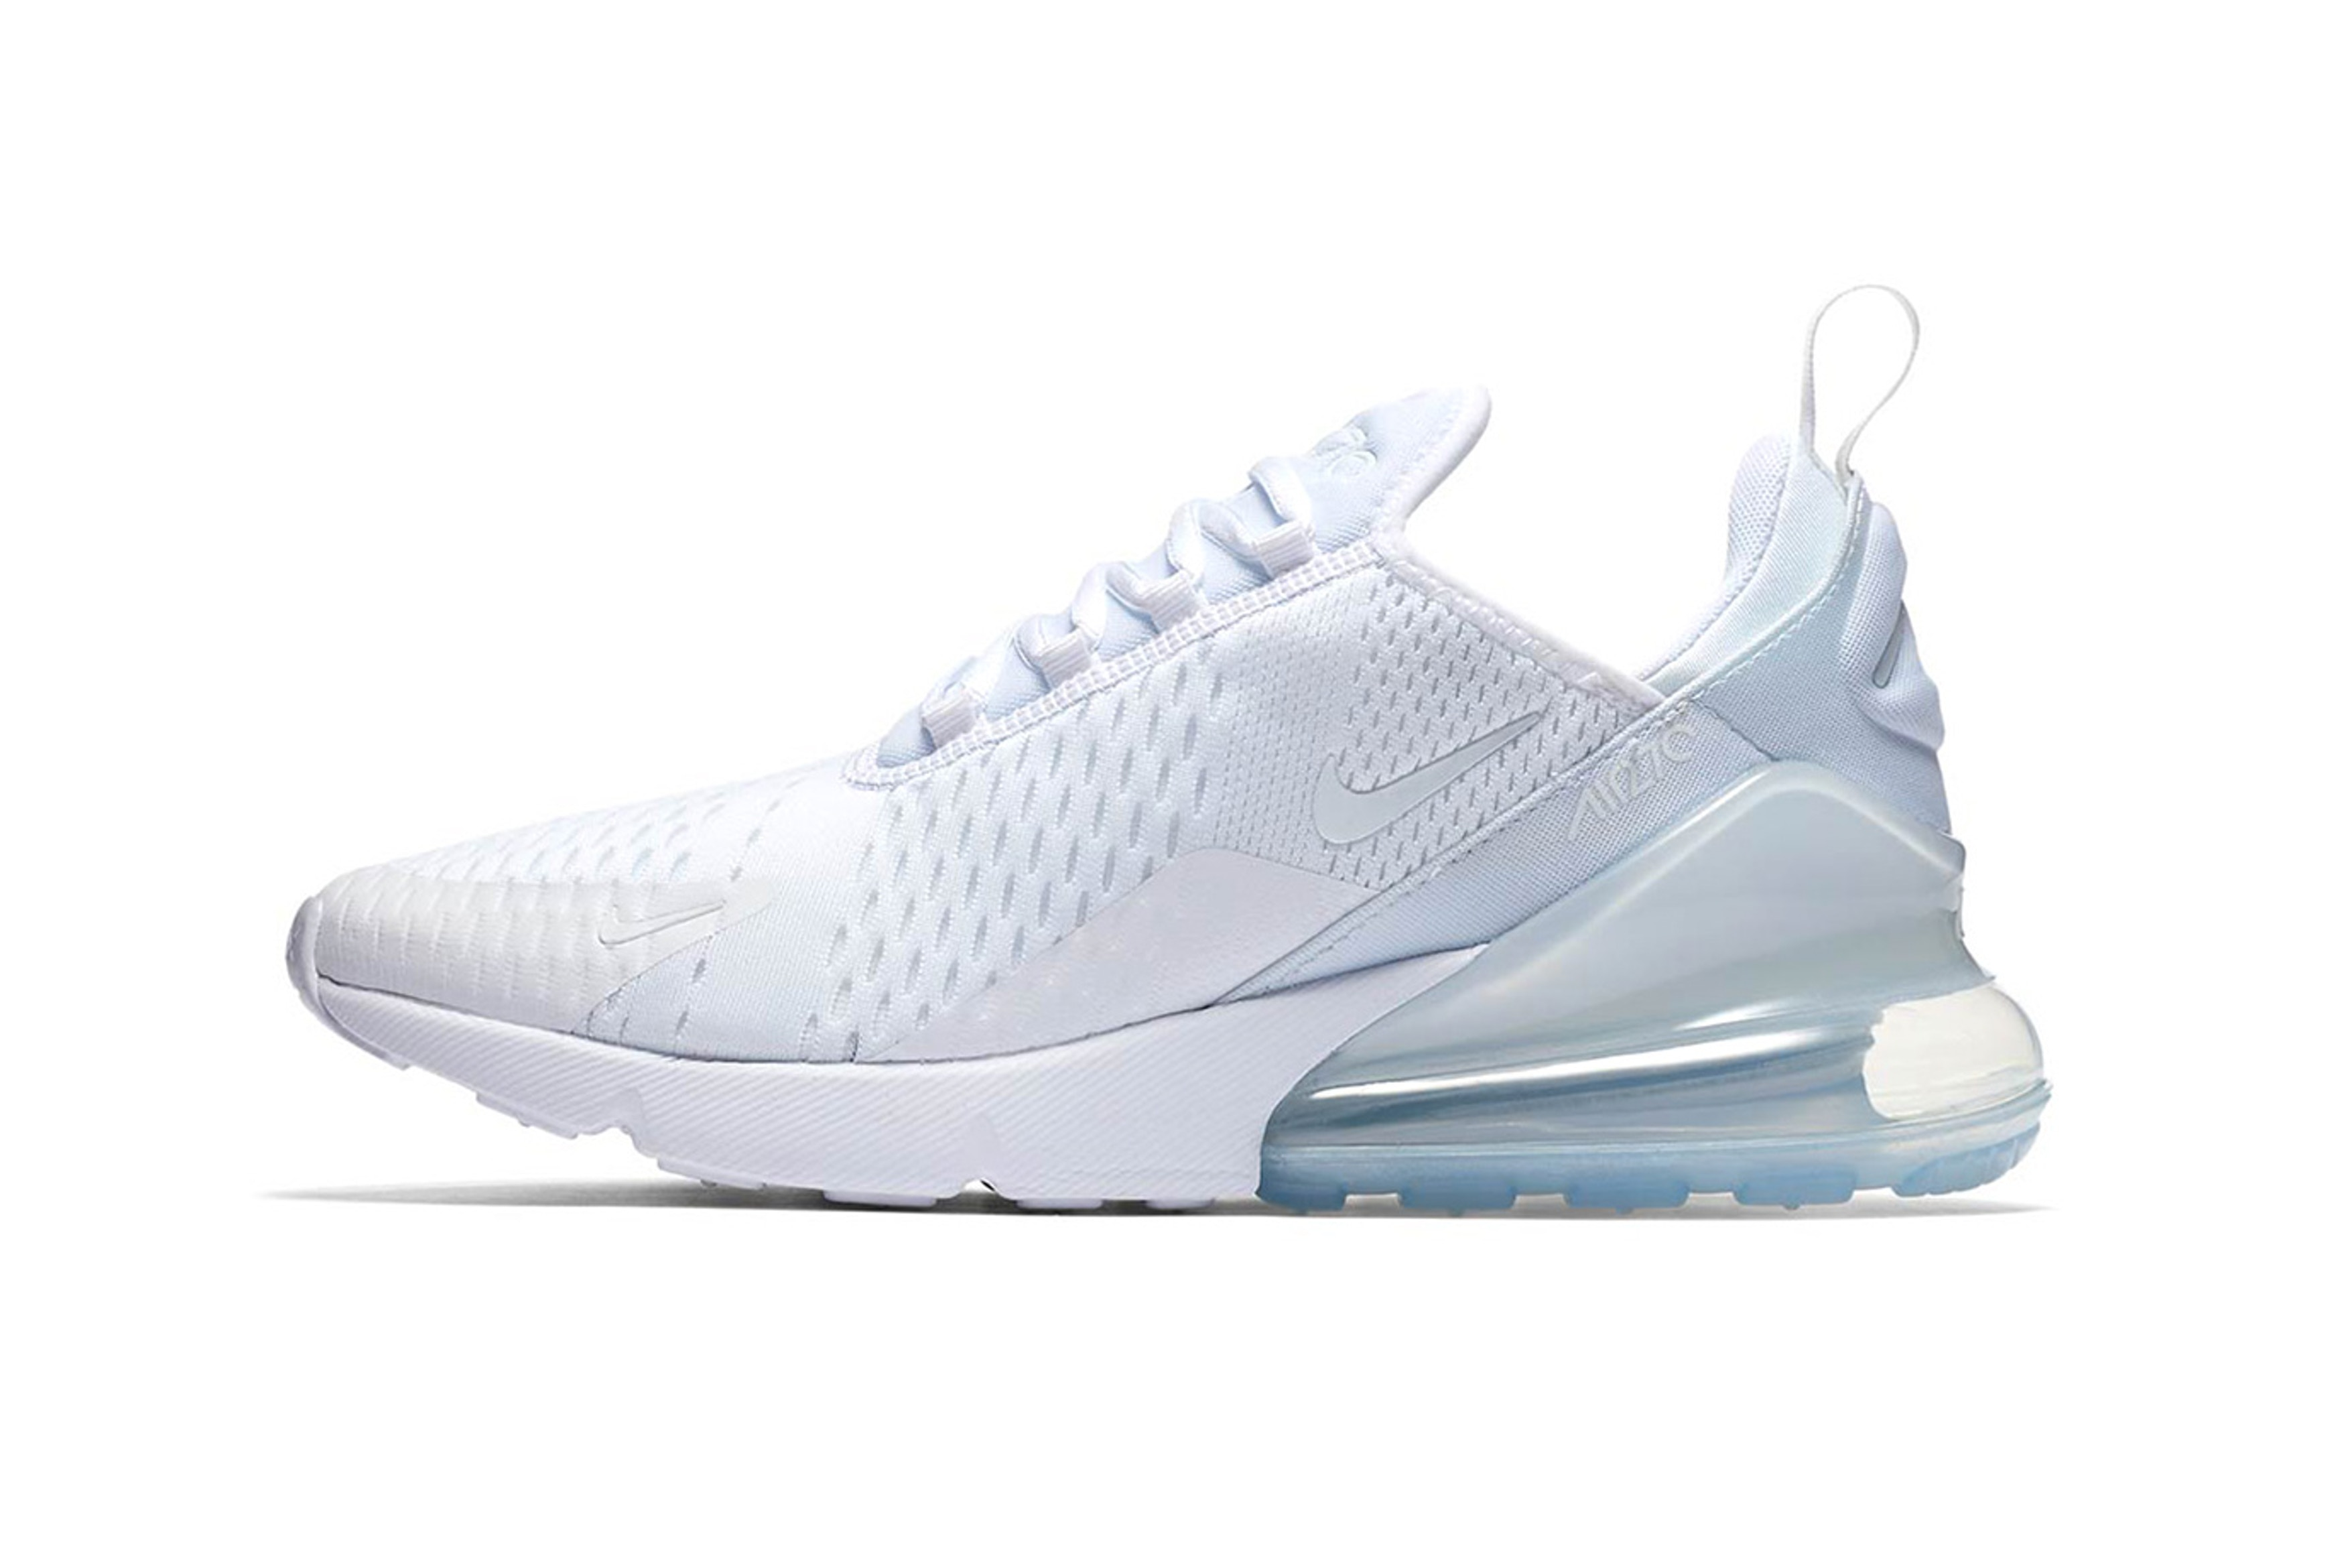 cheaper 1eff5 85e55 Nike Air Max 270 Triple White